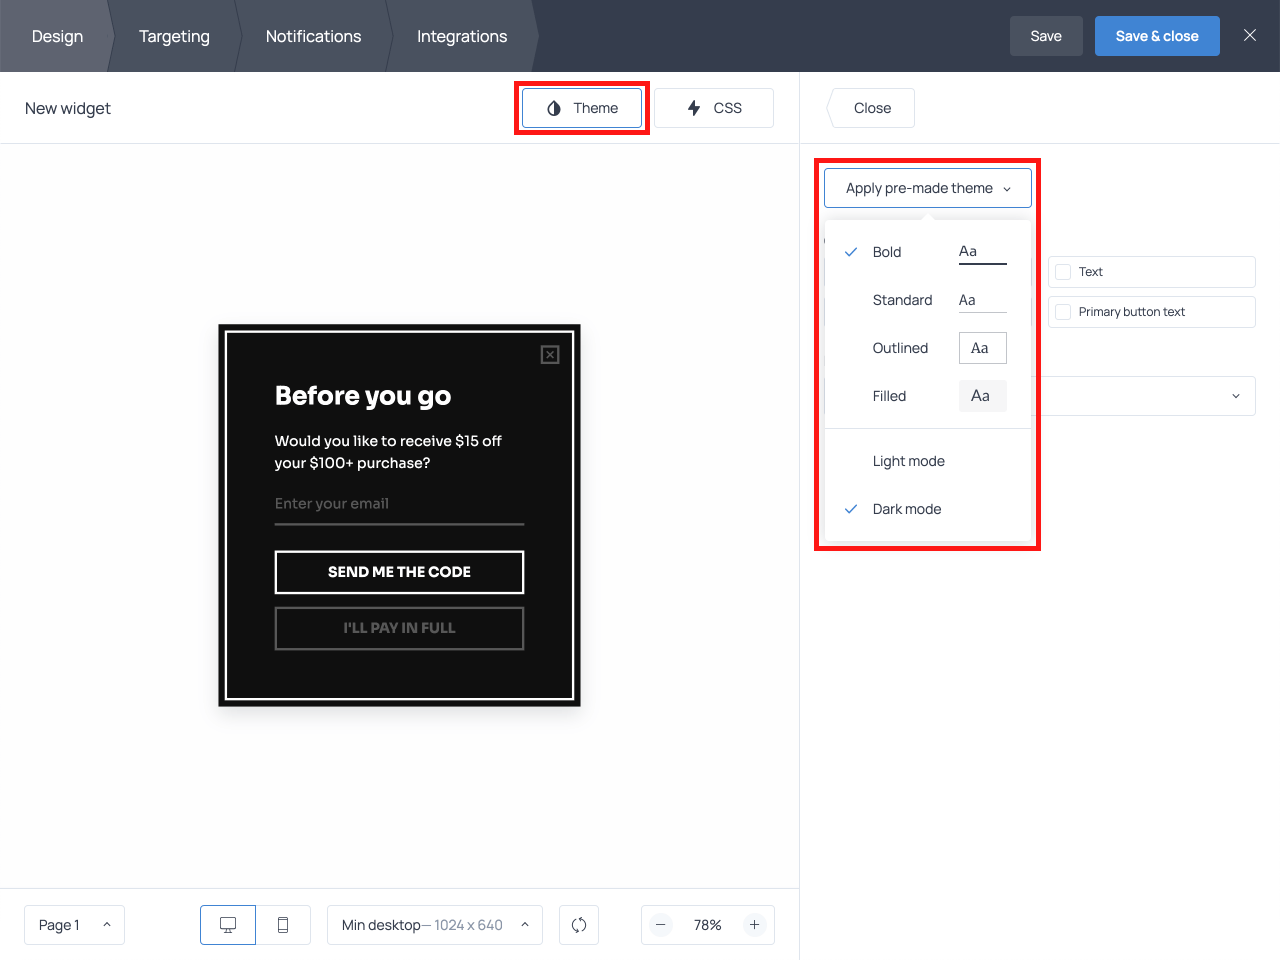 Getsitecontrol autoresponder feature allows for sending emails to new subscribers